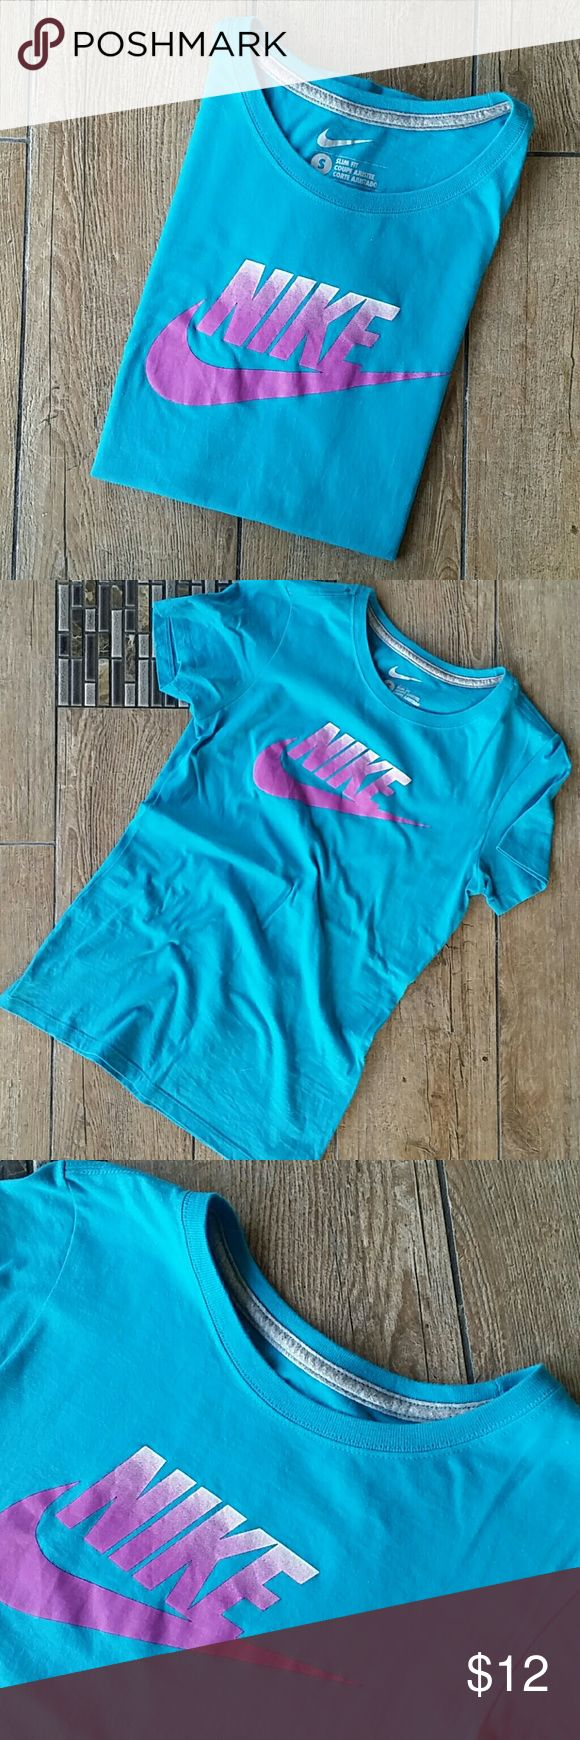 "NIKE SLIM FIT TEE Aqua blue short sleeve Magenta ""Nike"" with Swoosh Crew cut 16"" armpit to armpit 25"" shoulder to hem No rips, stains,pilling or peeling of logo Smoke free home Nike Tops Tees - Short Sleeve"